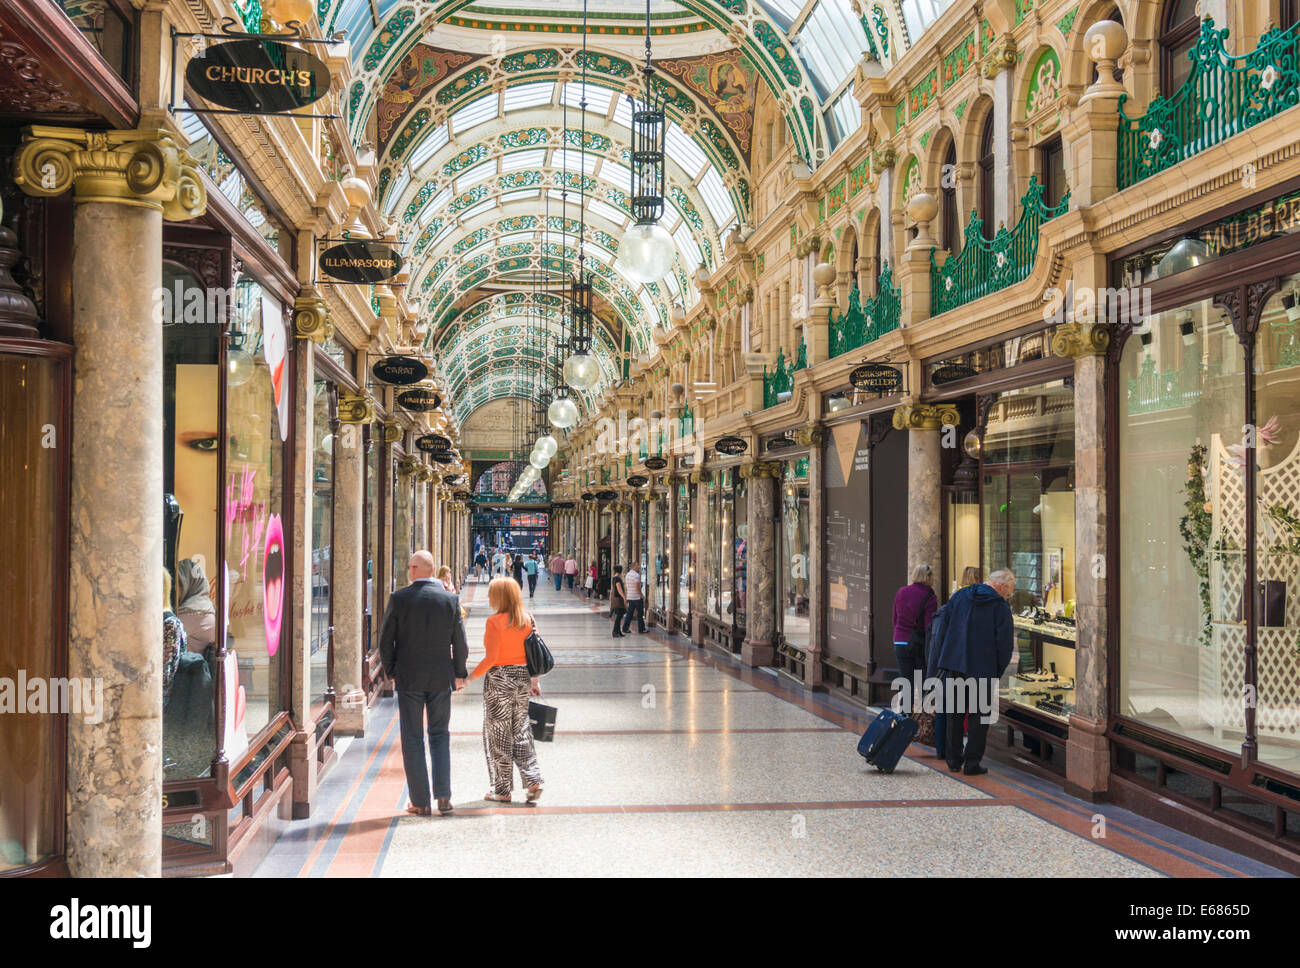 yorkshire Leeds yorkshire County Arcade shopping  Victoria Quarter Leeds City Centre Leeds West Yorkshire England - Stock Image